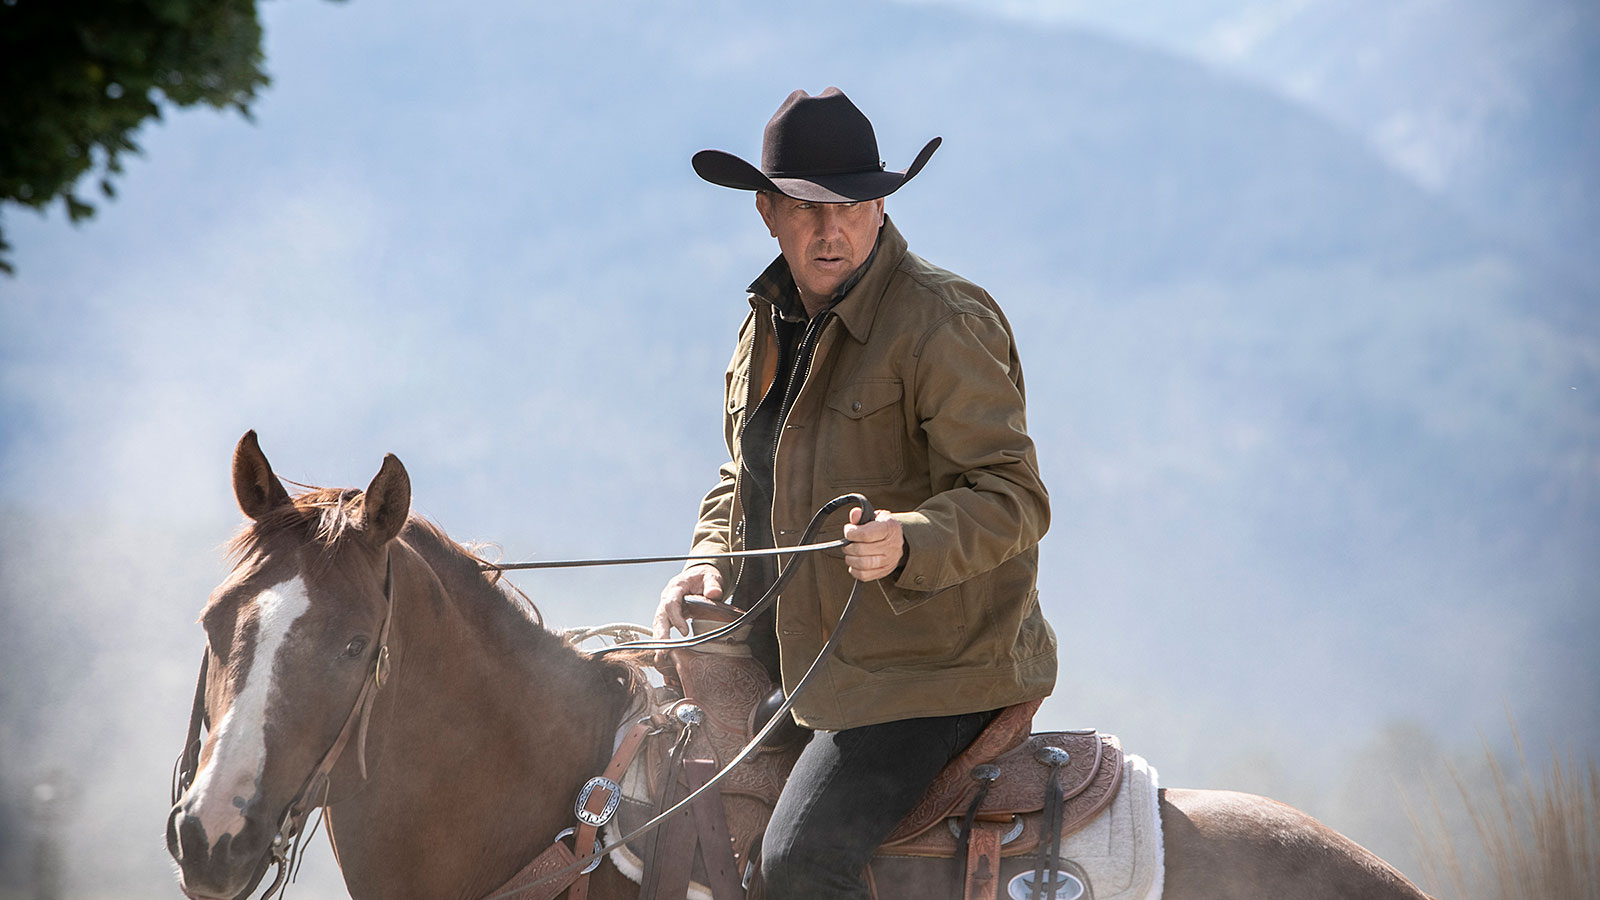 4 career lessons from movie and TV cowboys